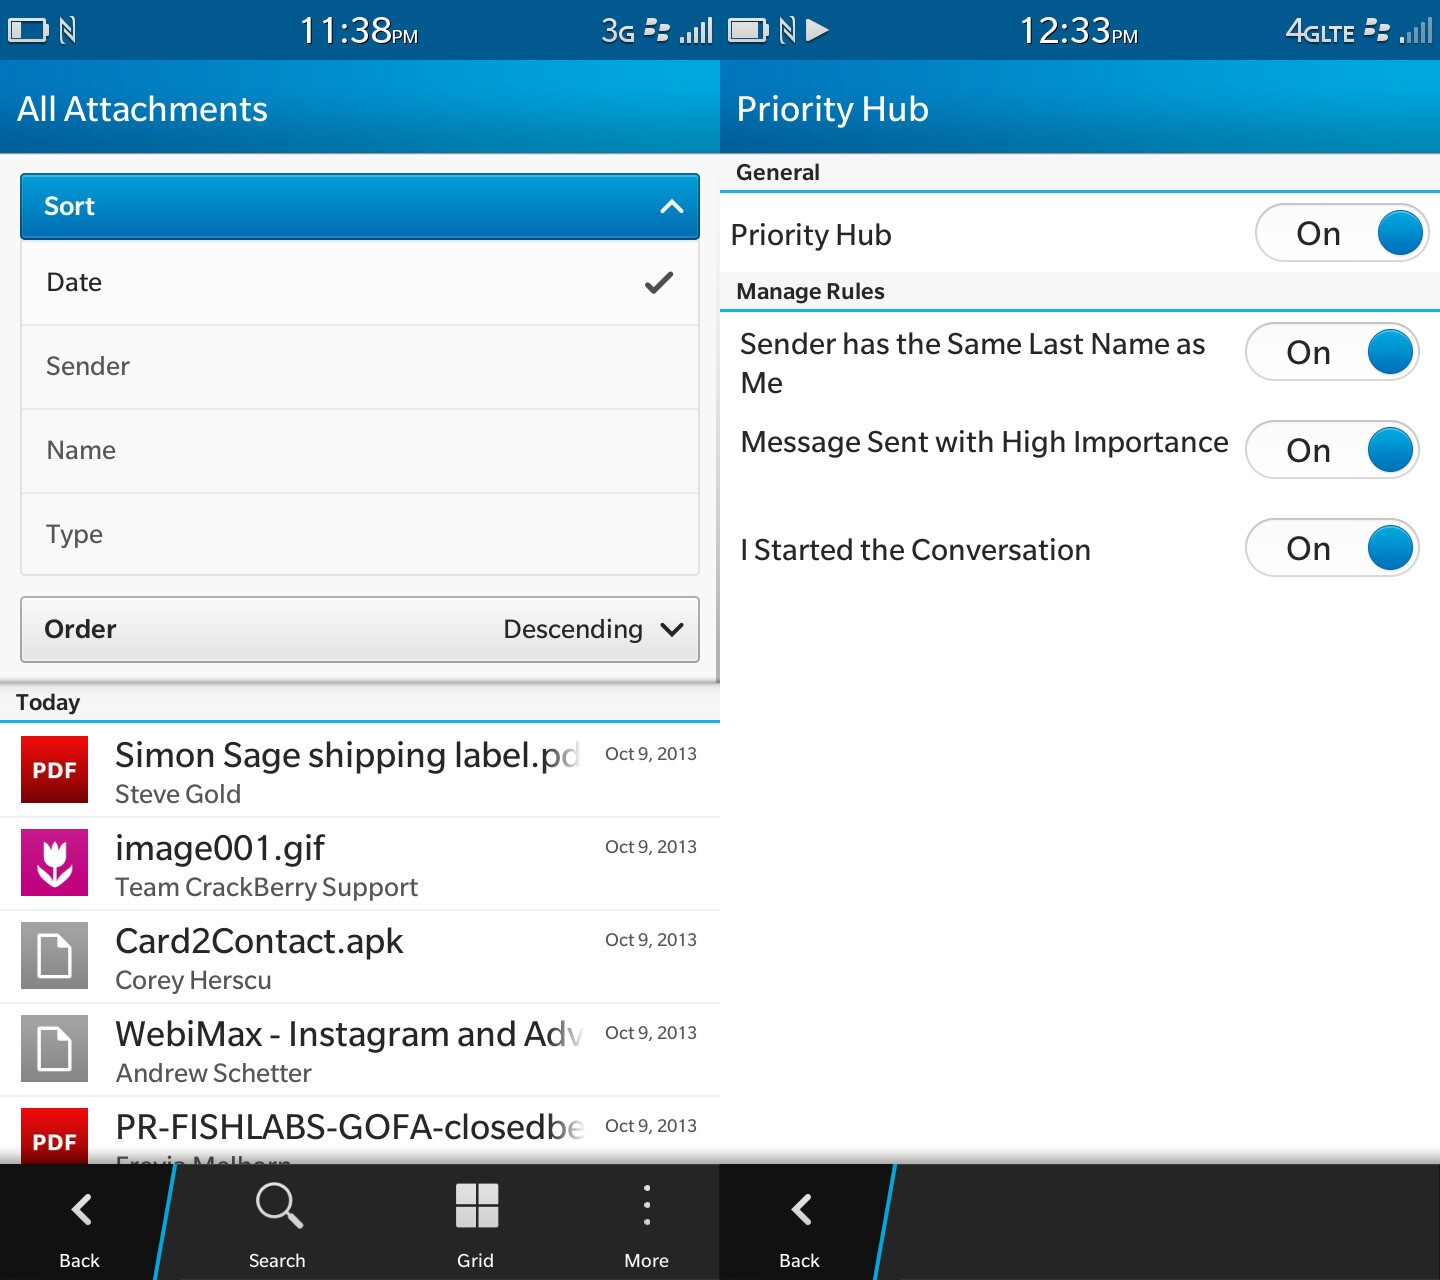 BlackBerry 10.2 attachment search and priority hub